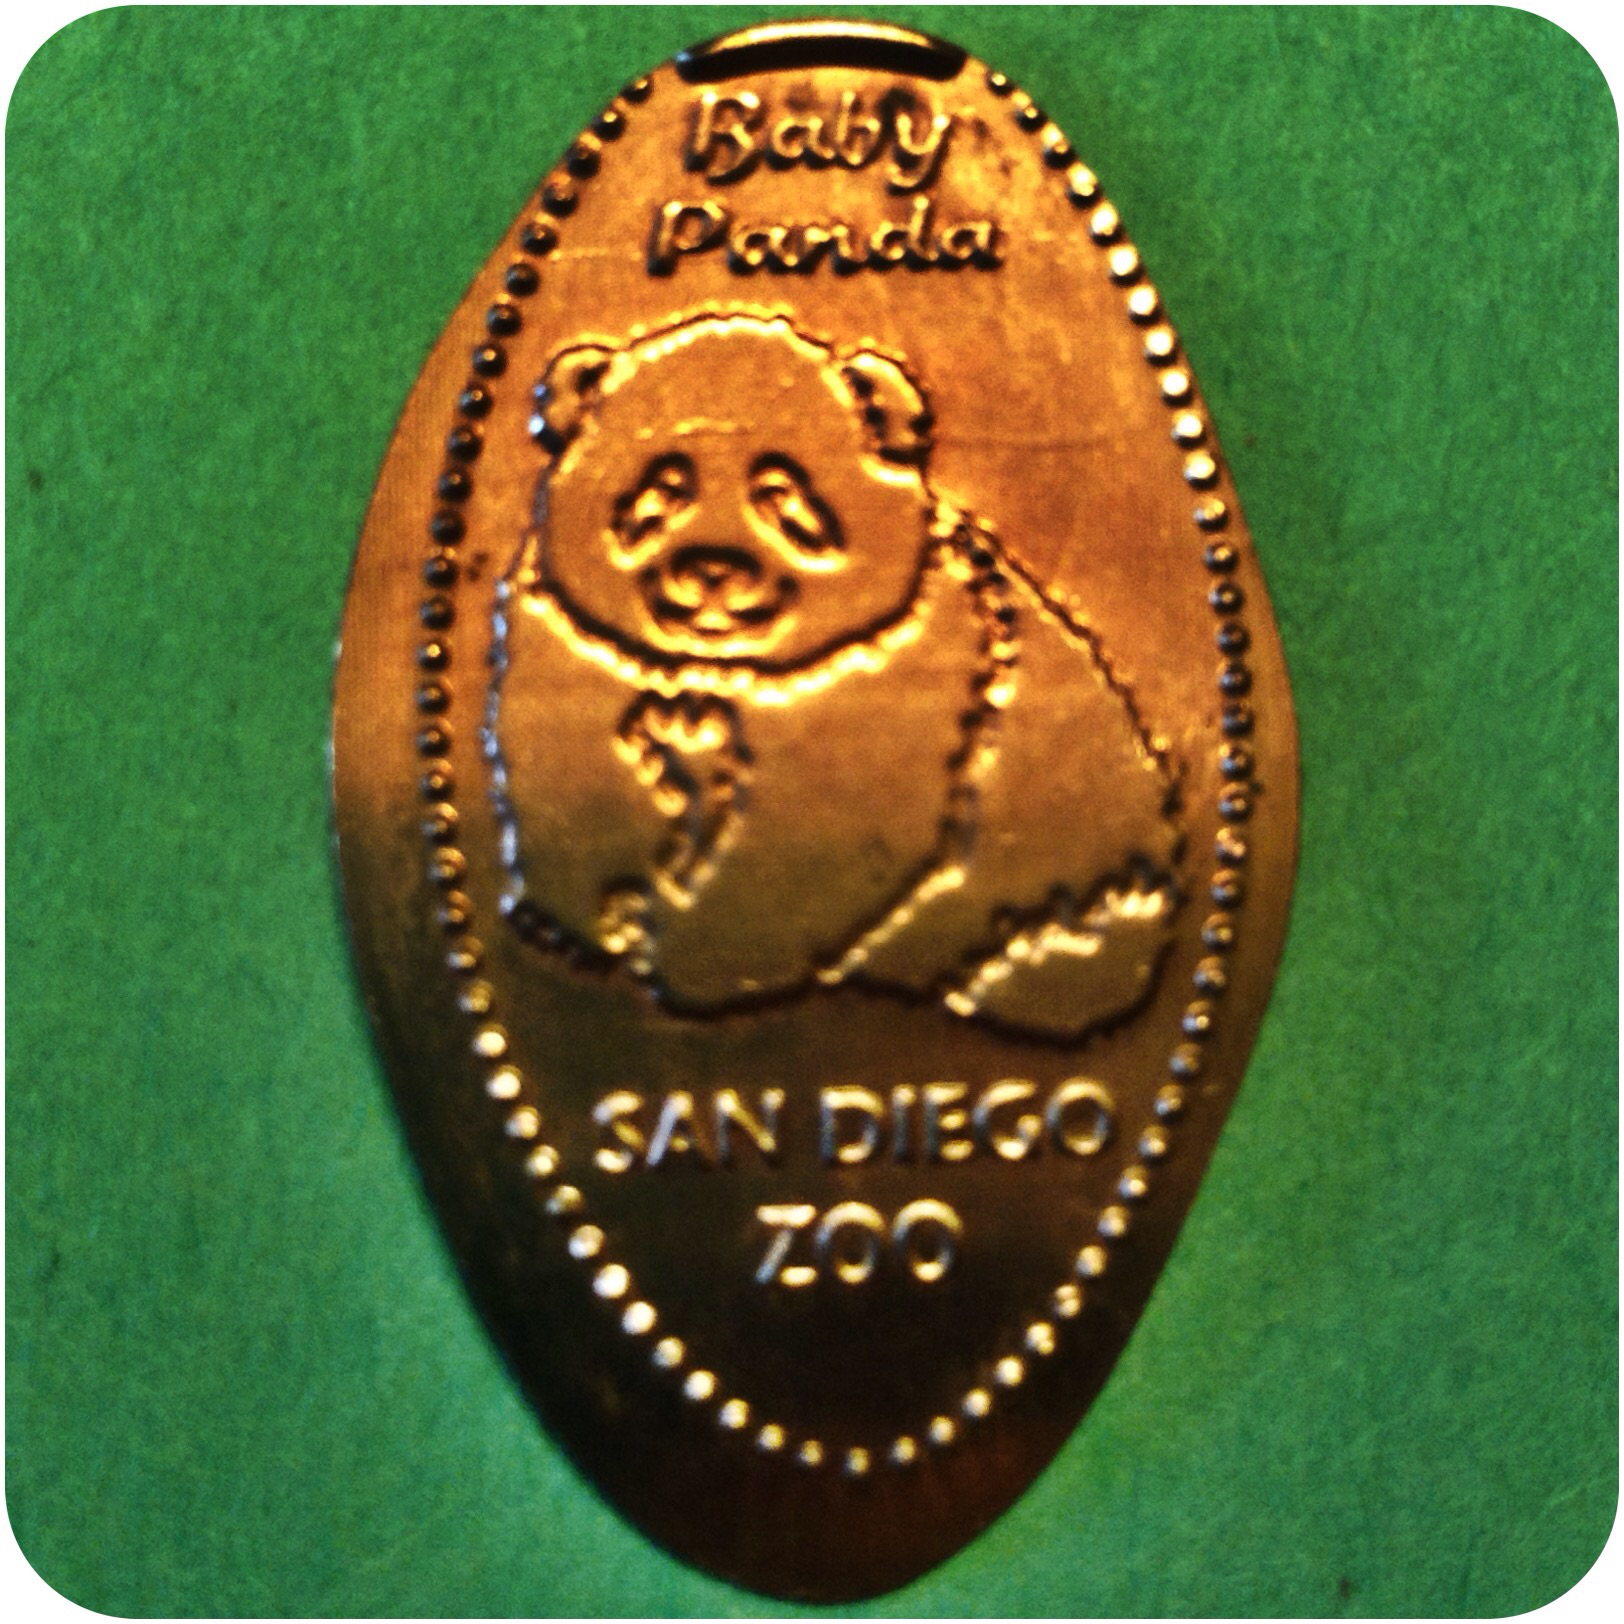 Baby Panda - Asian Passage, San Diego Zoo - Balboa Park, California Copper Penny